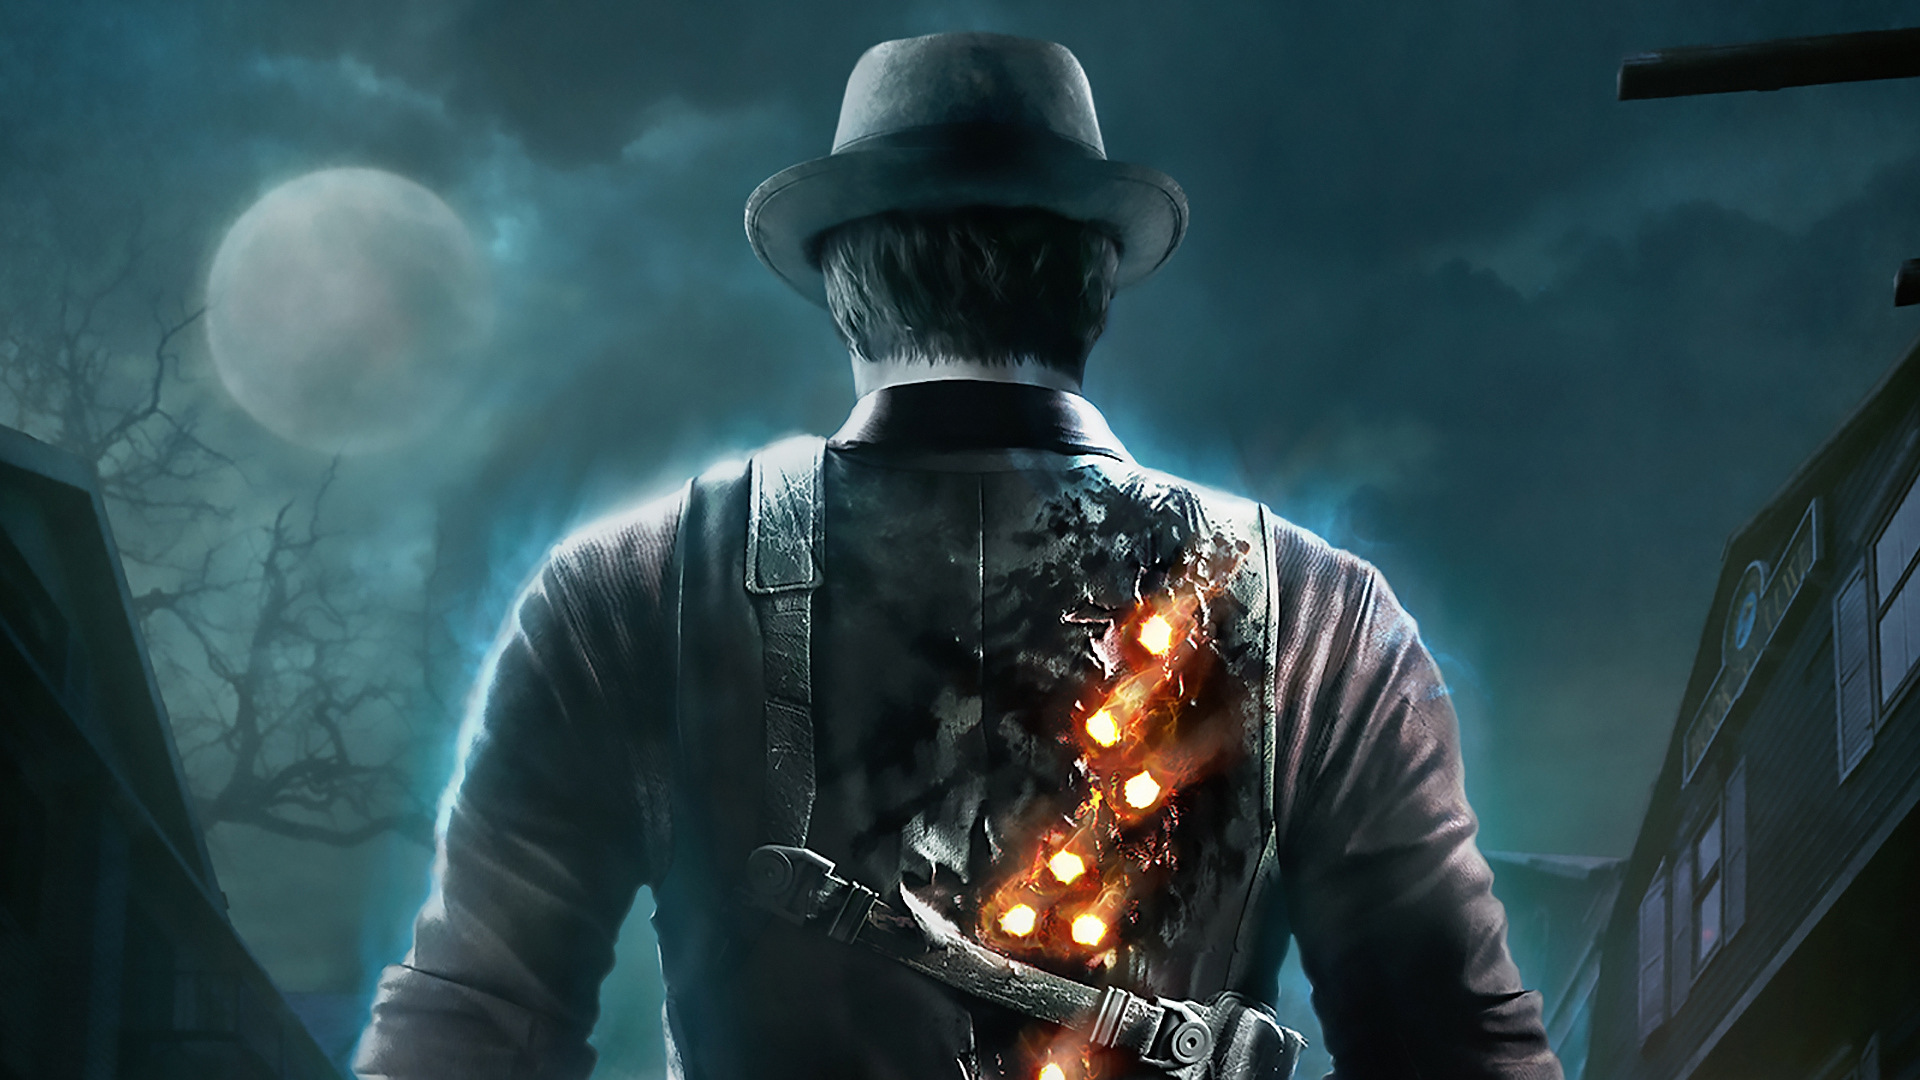 Background Images Wallpaper Abyss: 20 Murdered: Soul Suspect HD Wallpapers